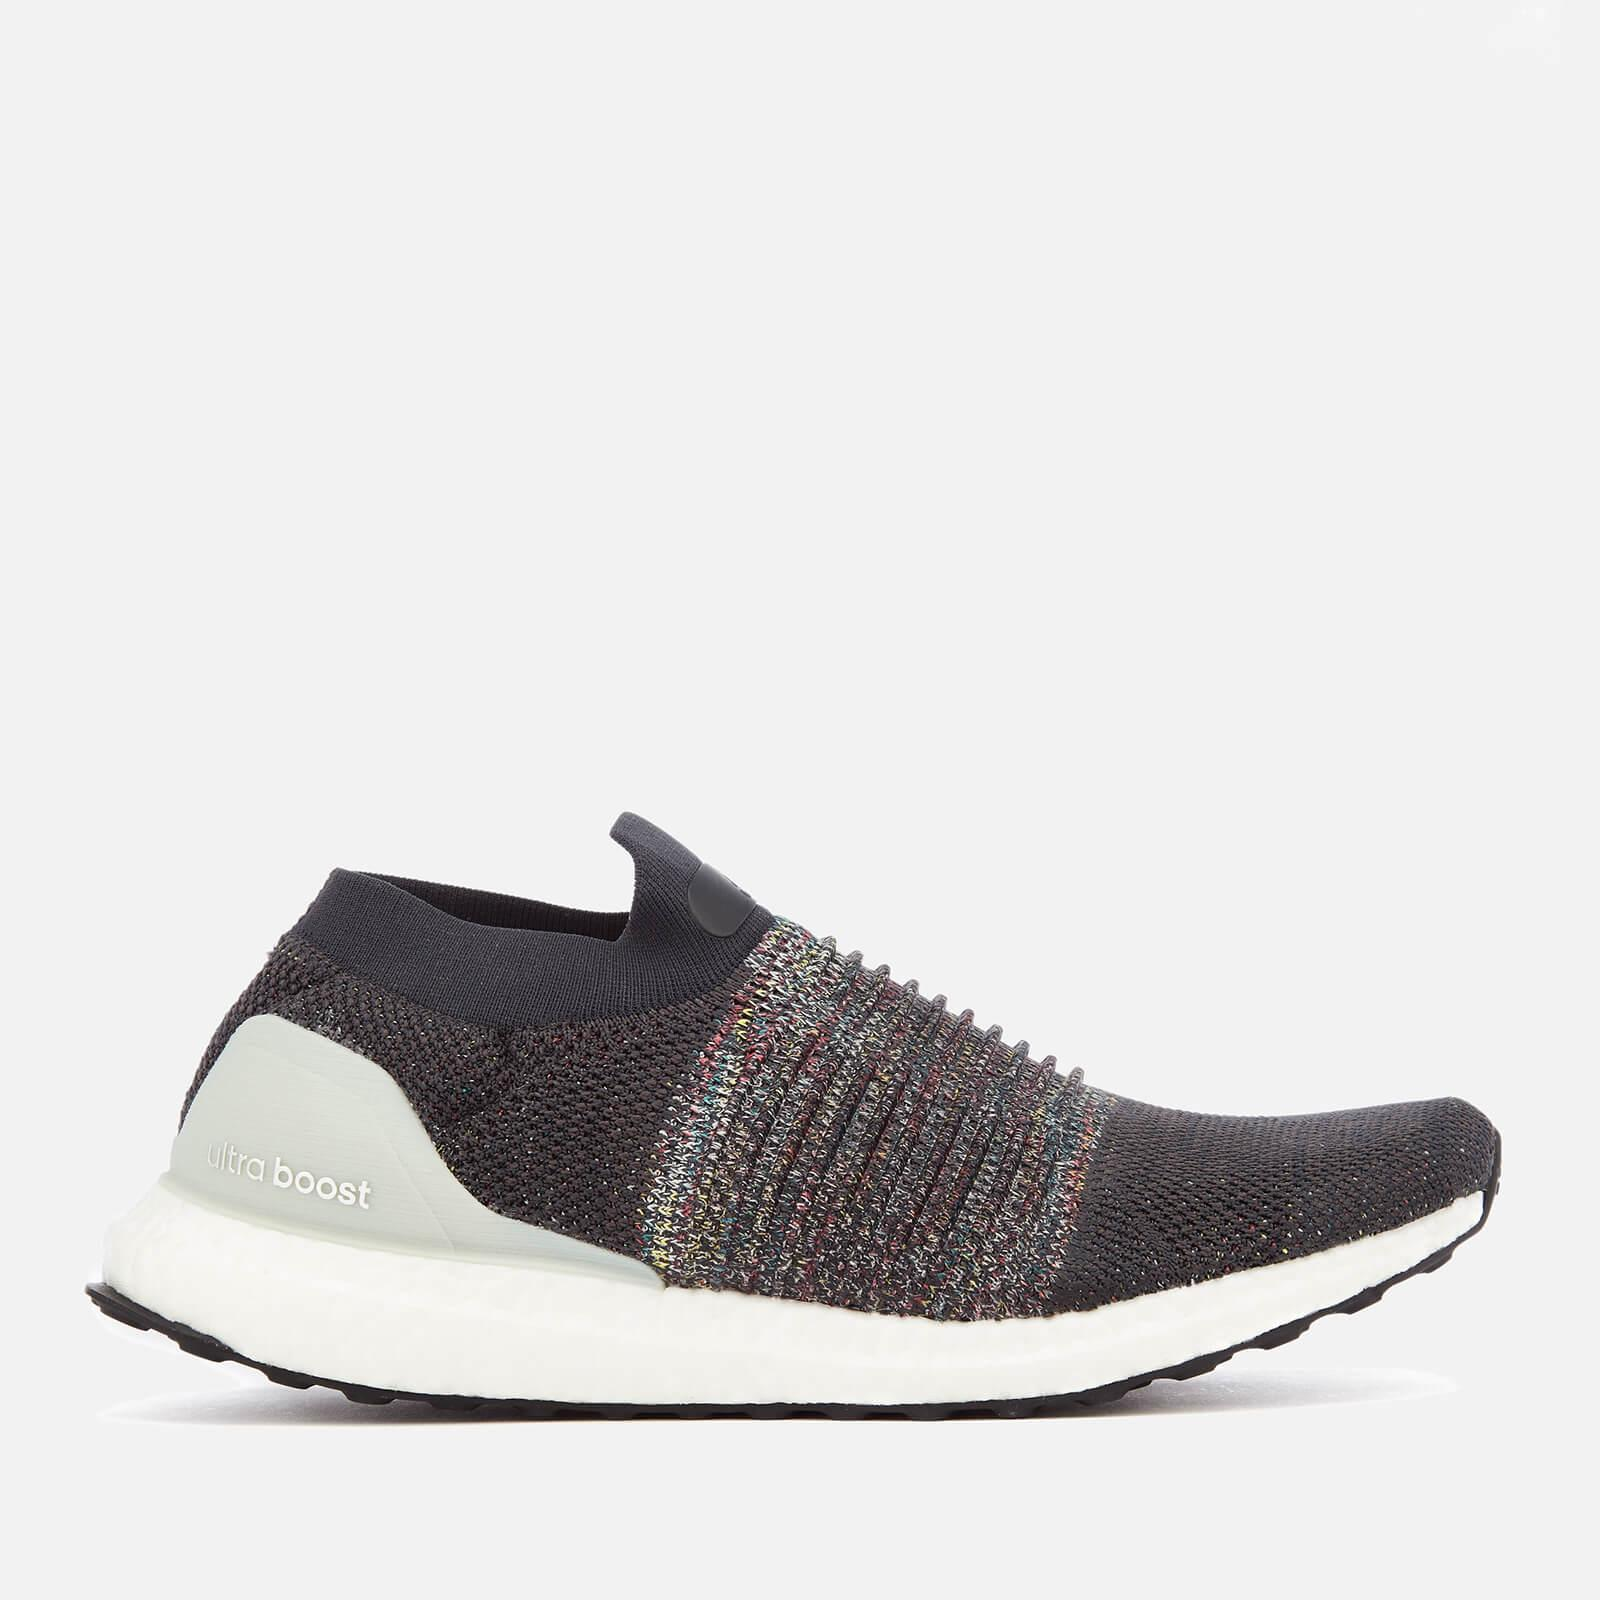 2489679de1e adidas Ultraboost Laceless Trainers in Gray for Men - Lyst